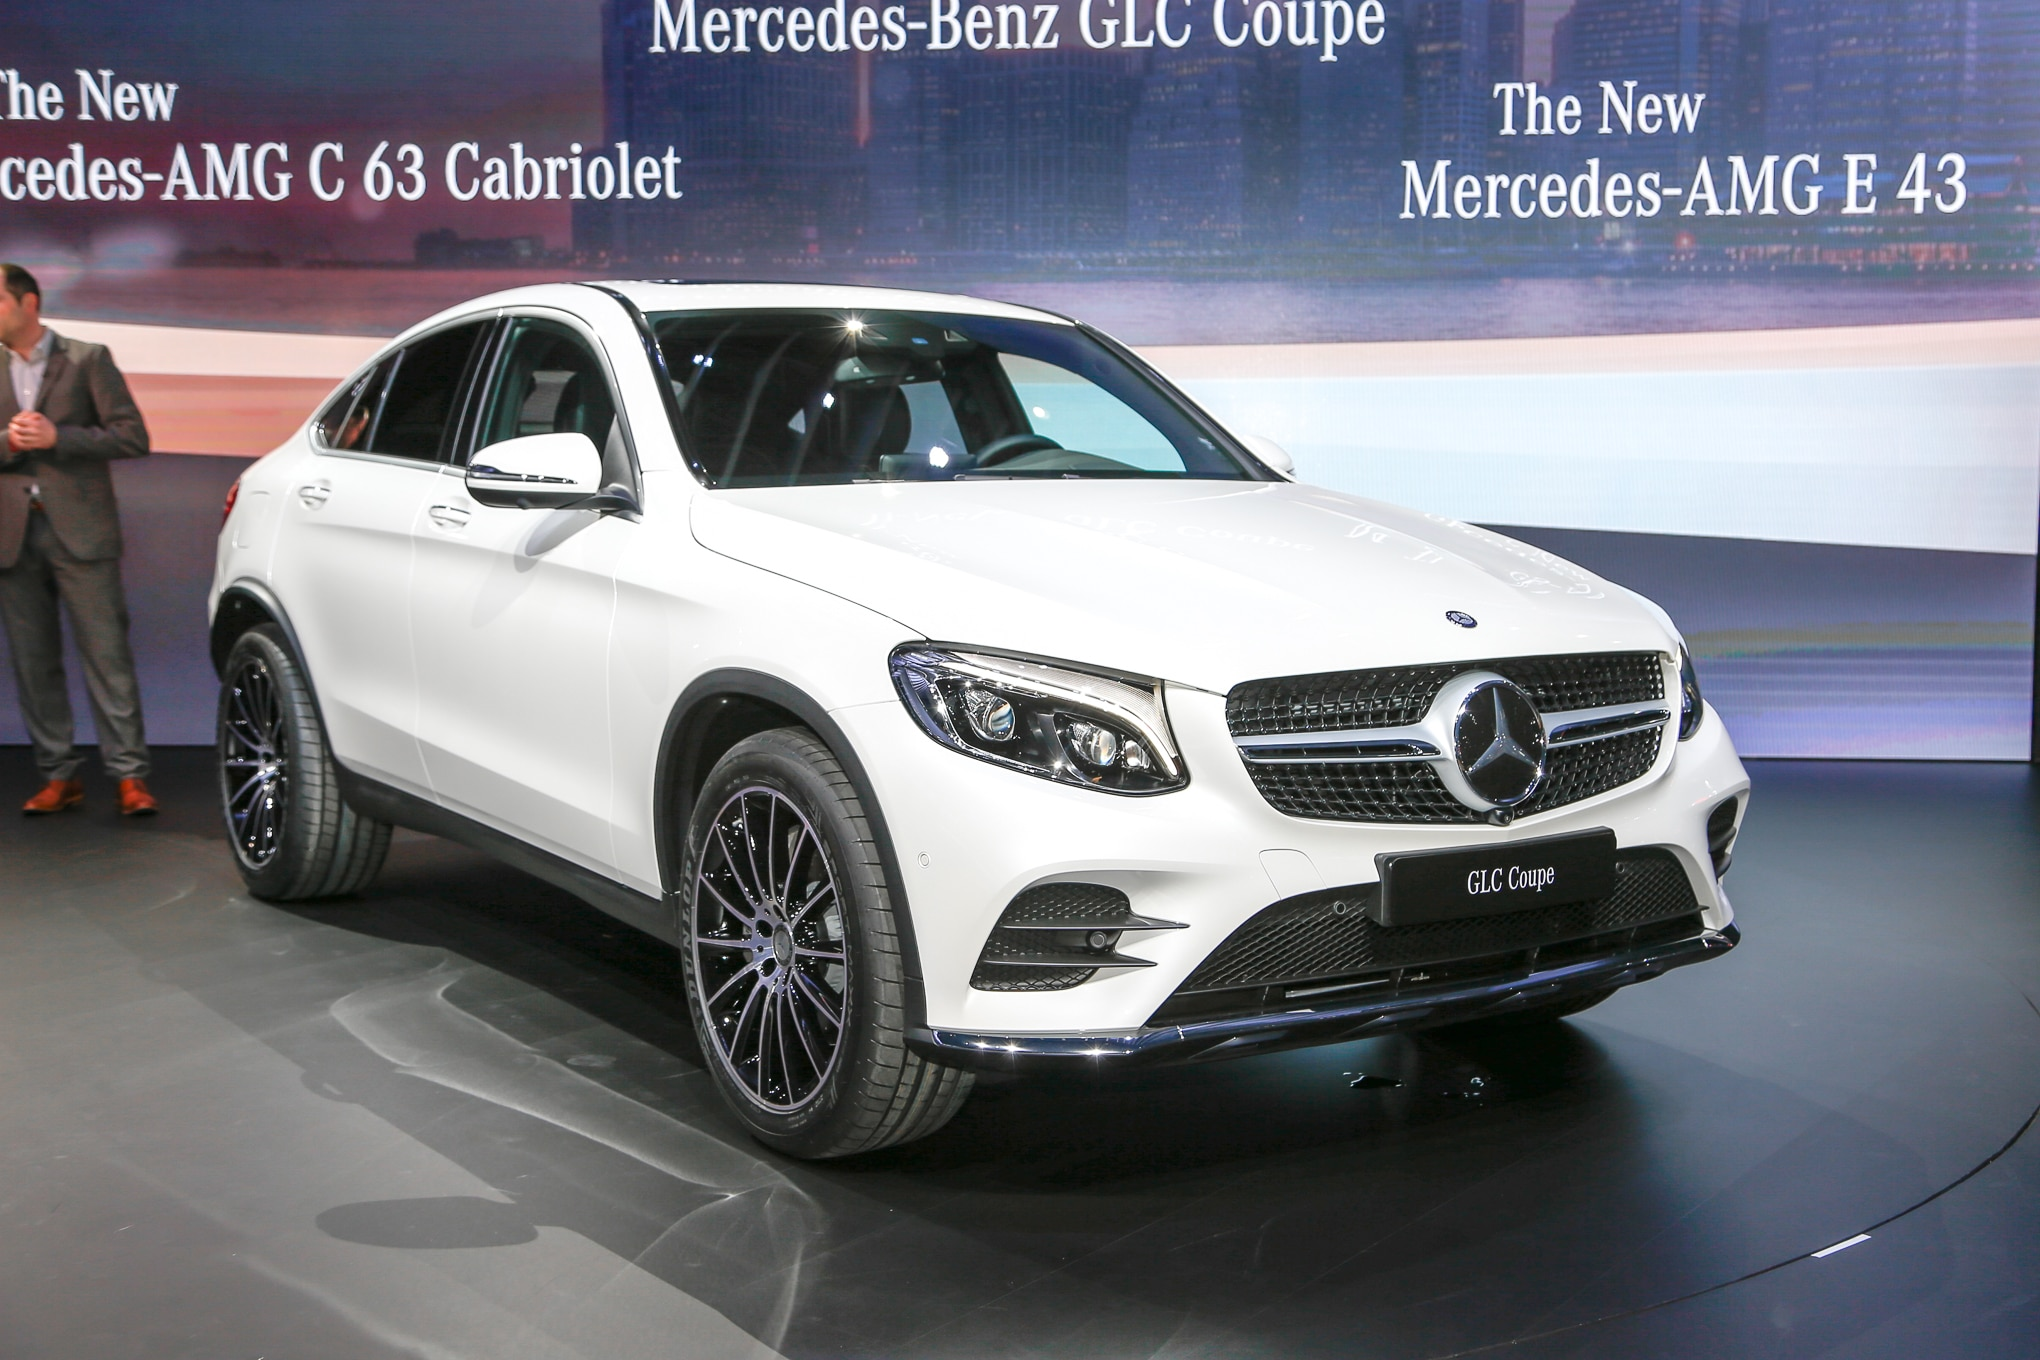 2017 Mercedes Benz Glc Coupe Debuts In New York 29 Adver To Skip 1